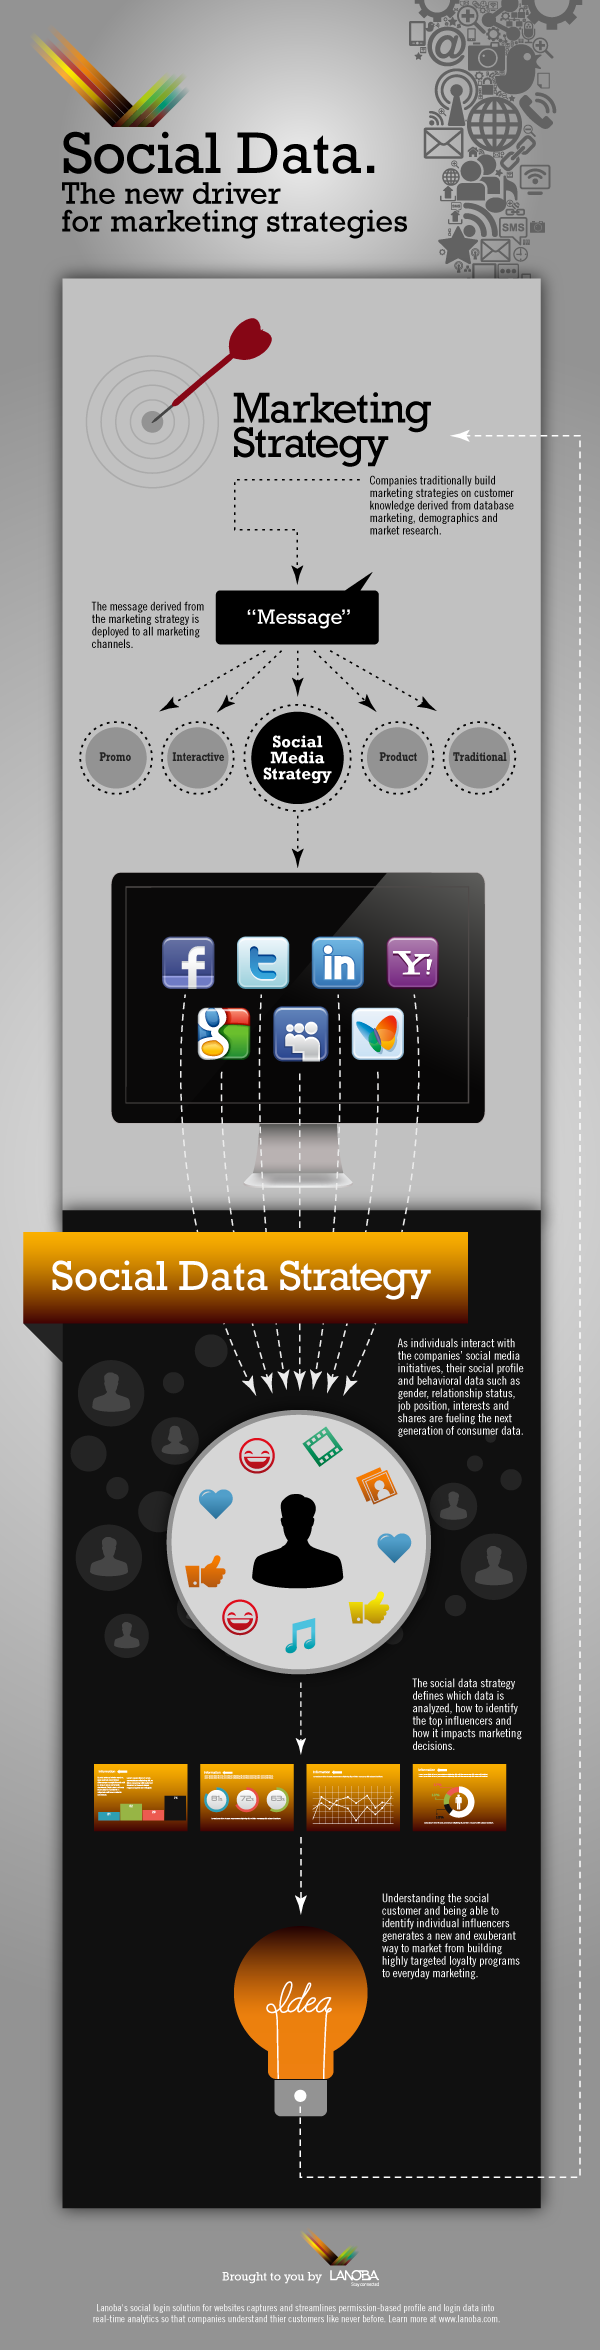 The-Social-Marketing-Strategy-Process.png